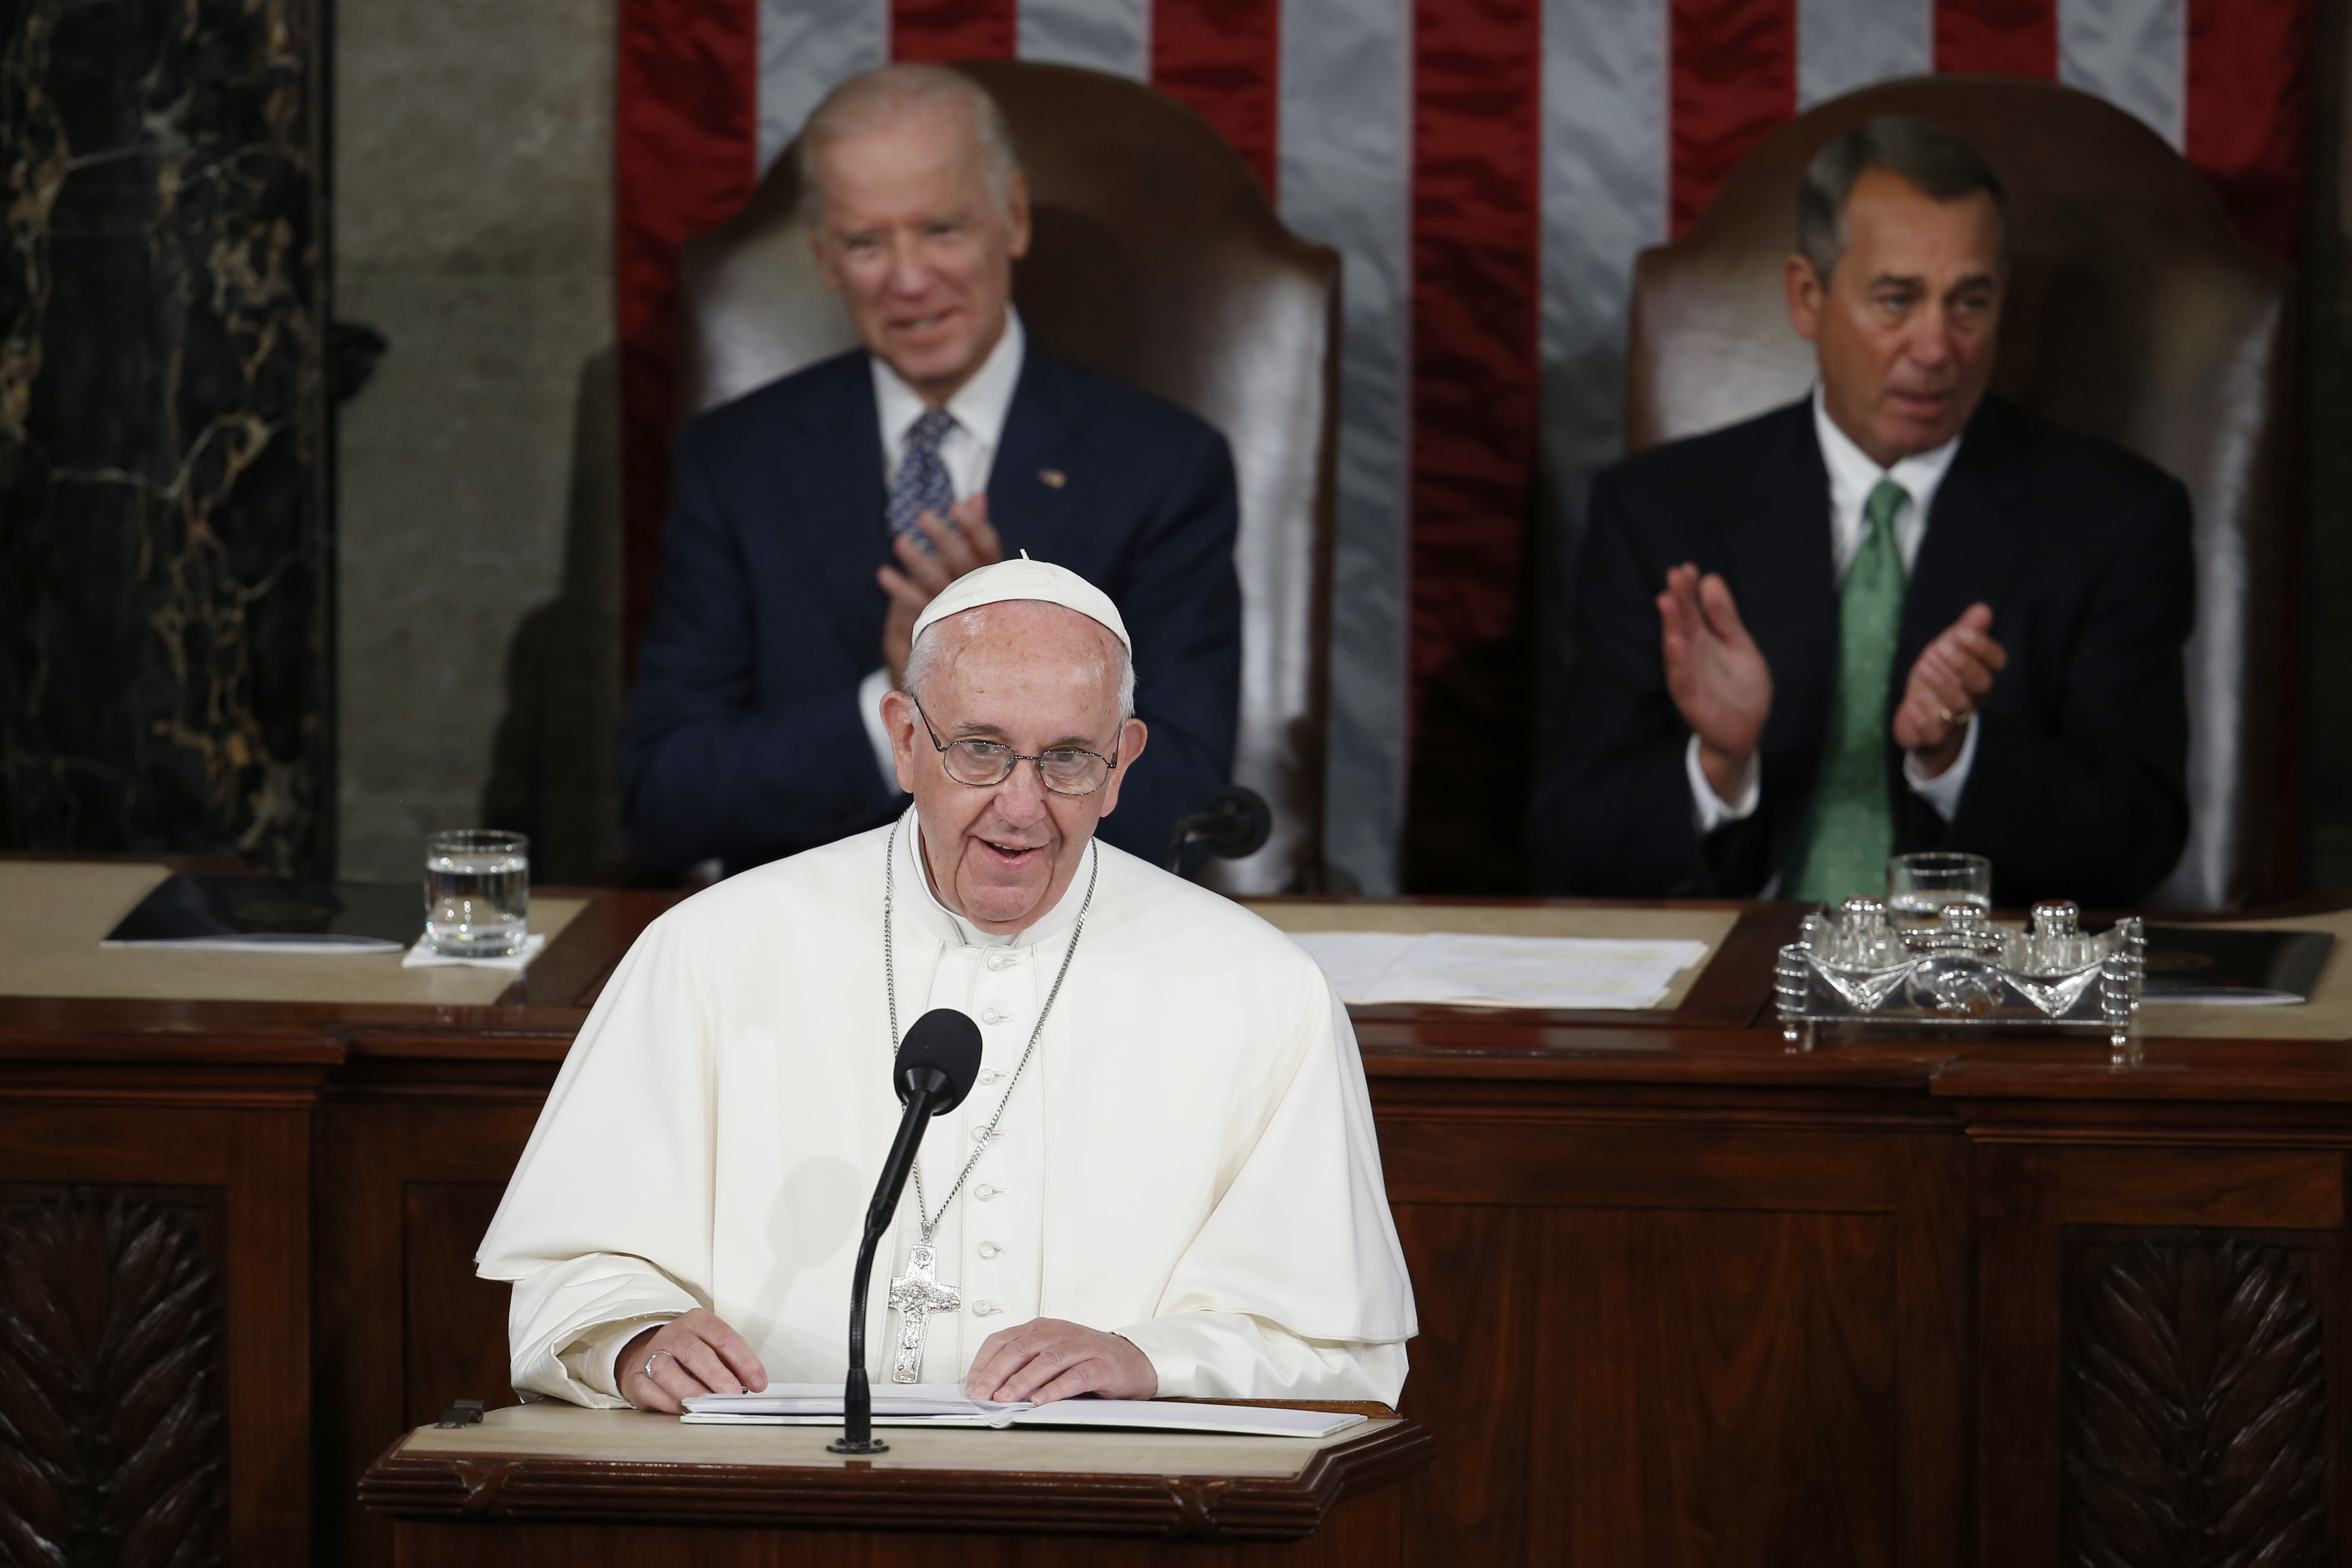 Pope urges Congress to abolish death penalty, embrace immigrants